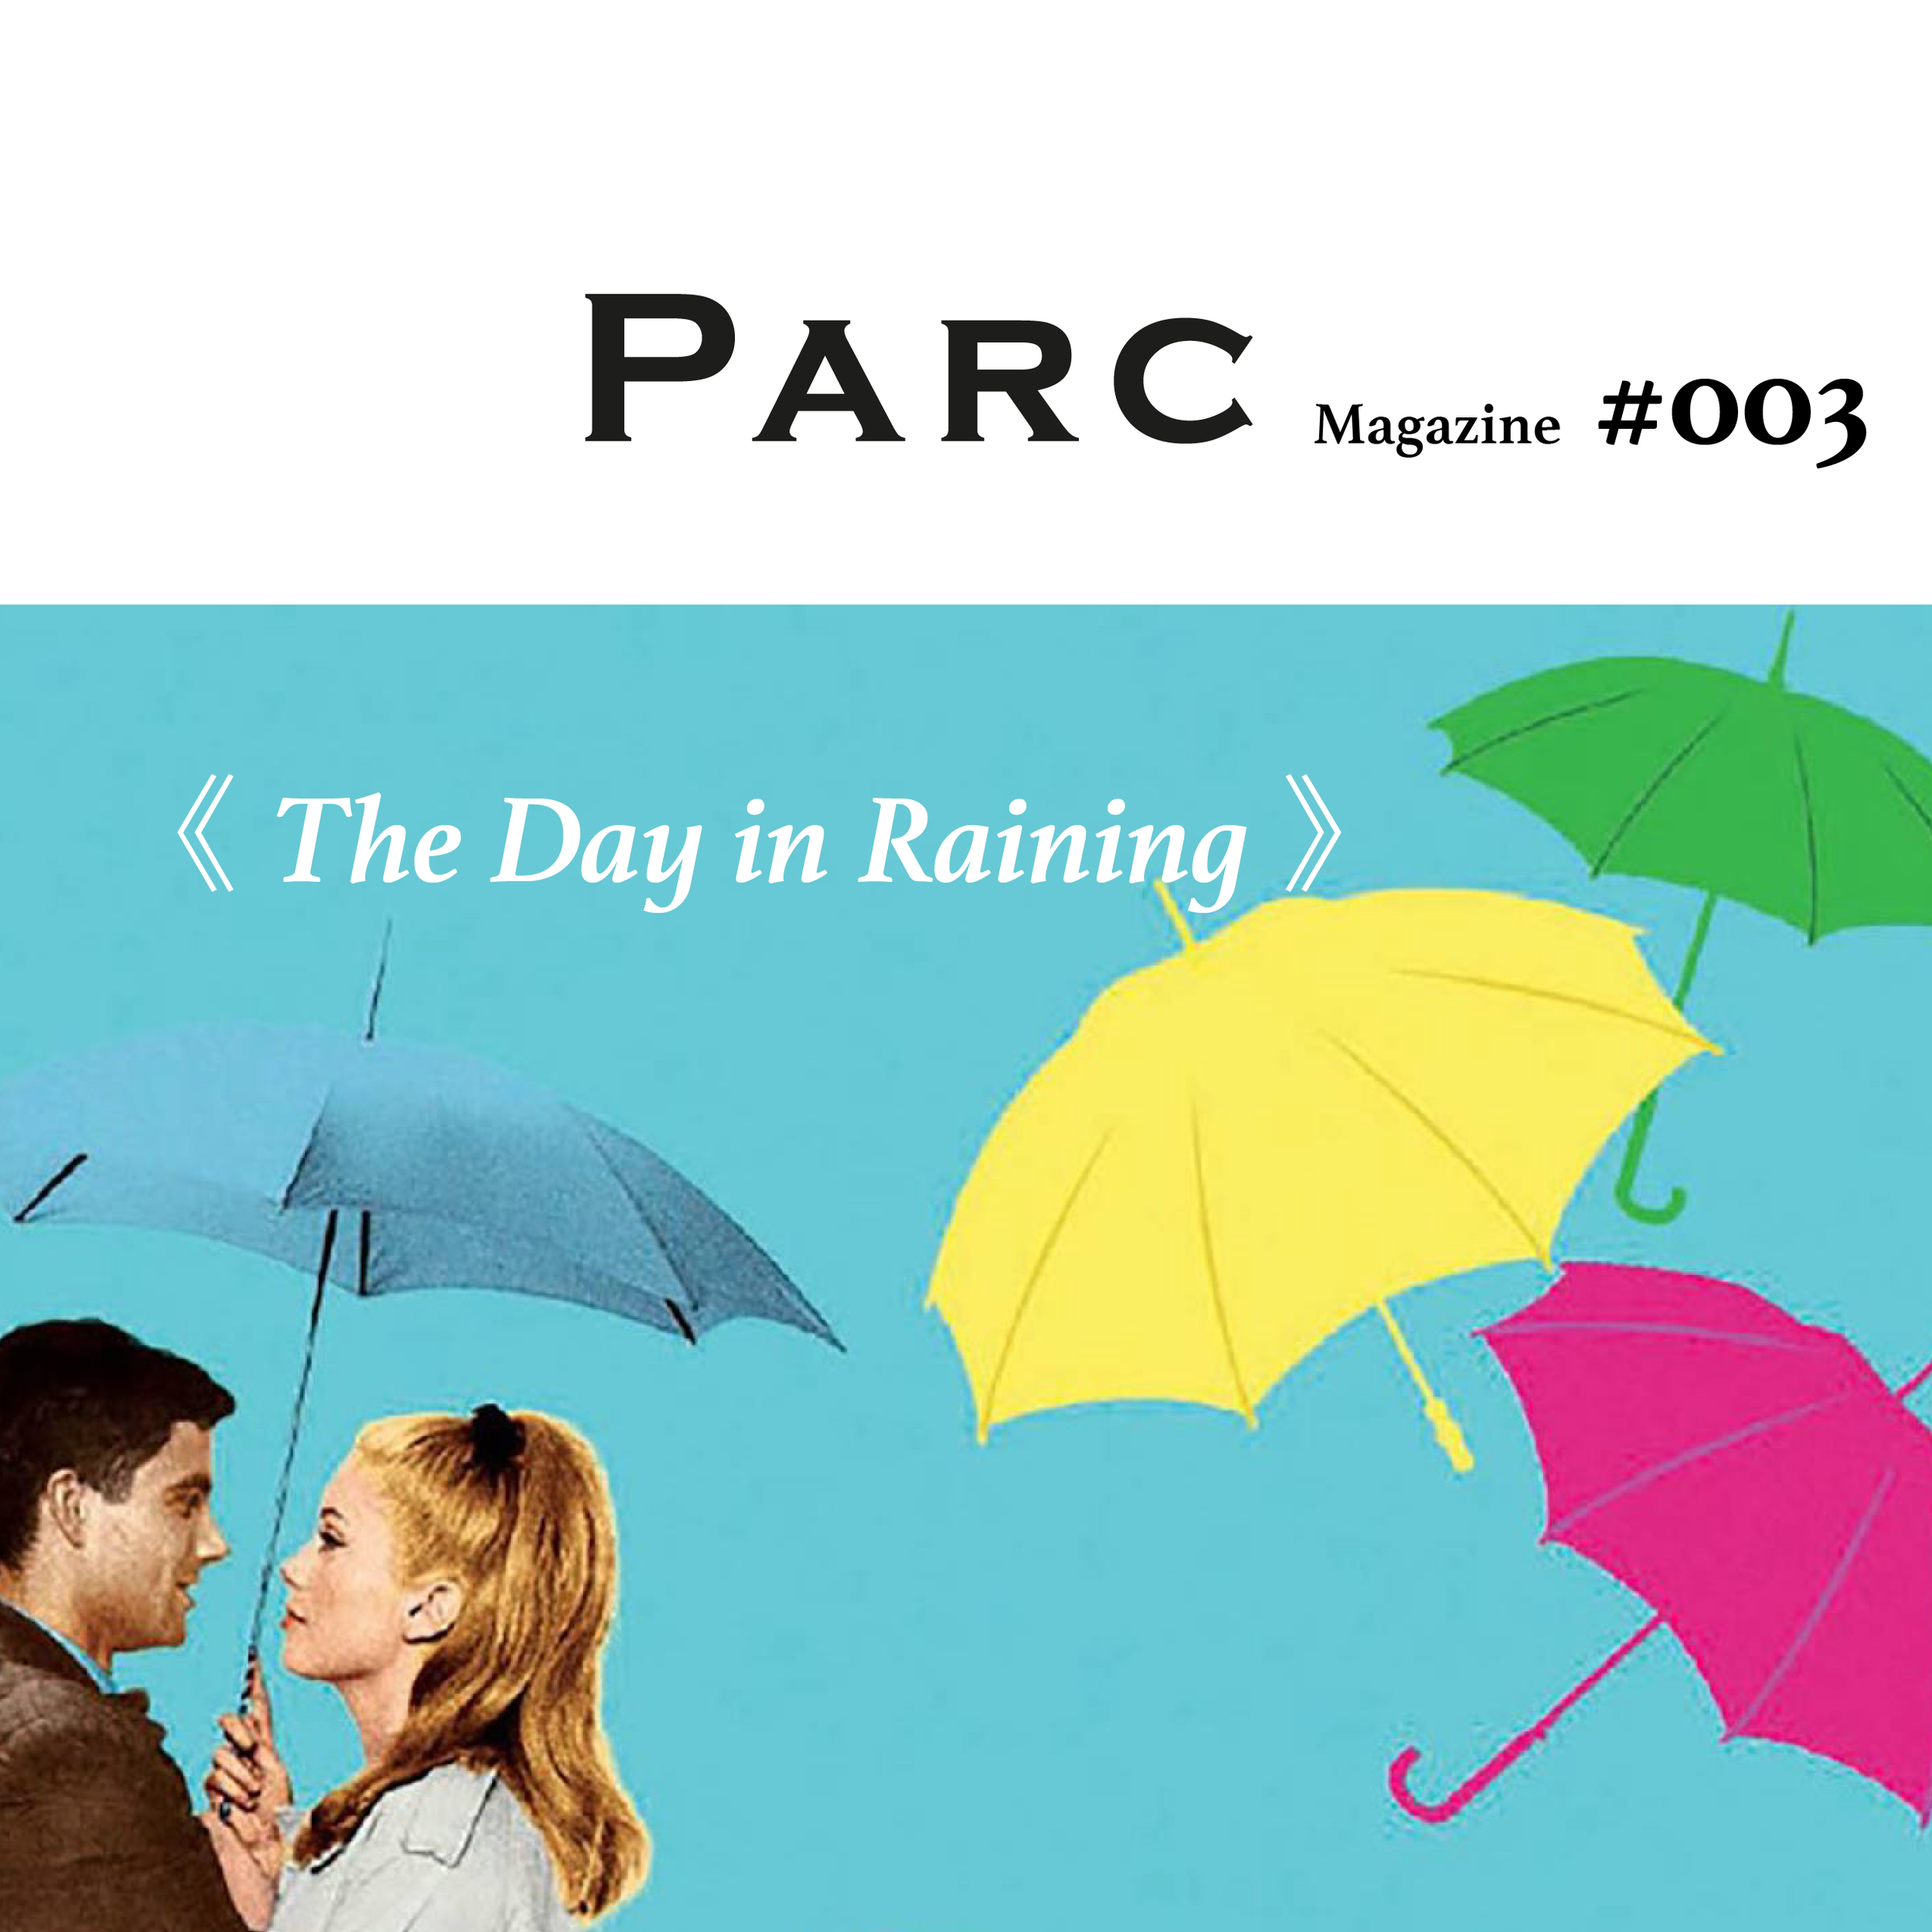 #003 《The Day in Raining 》